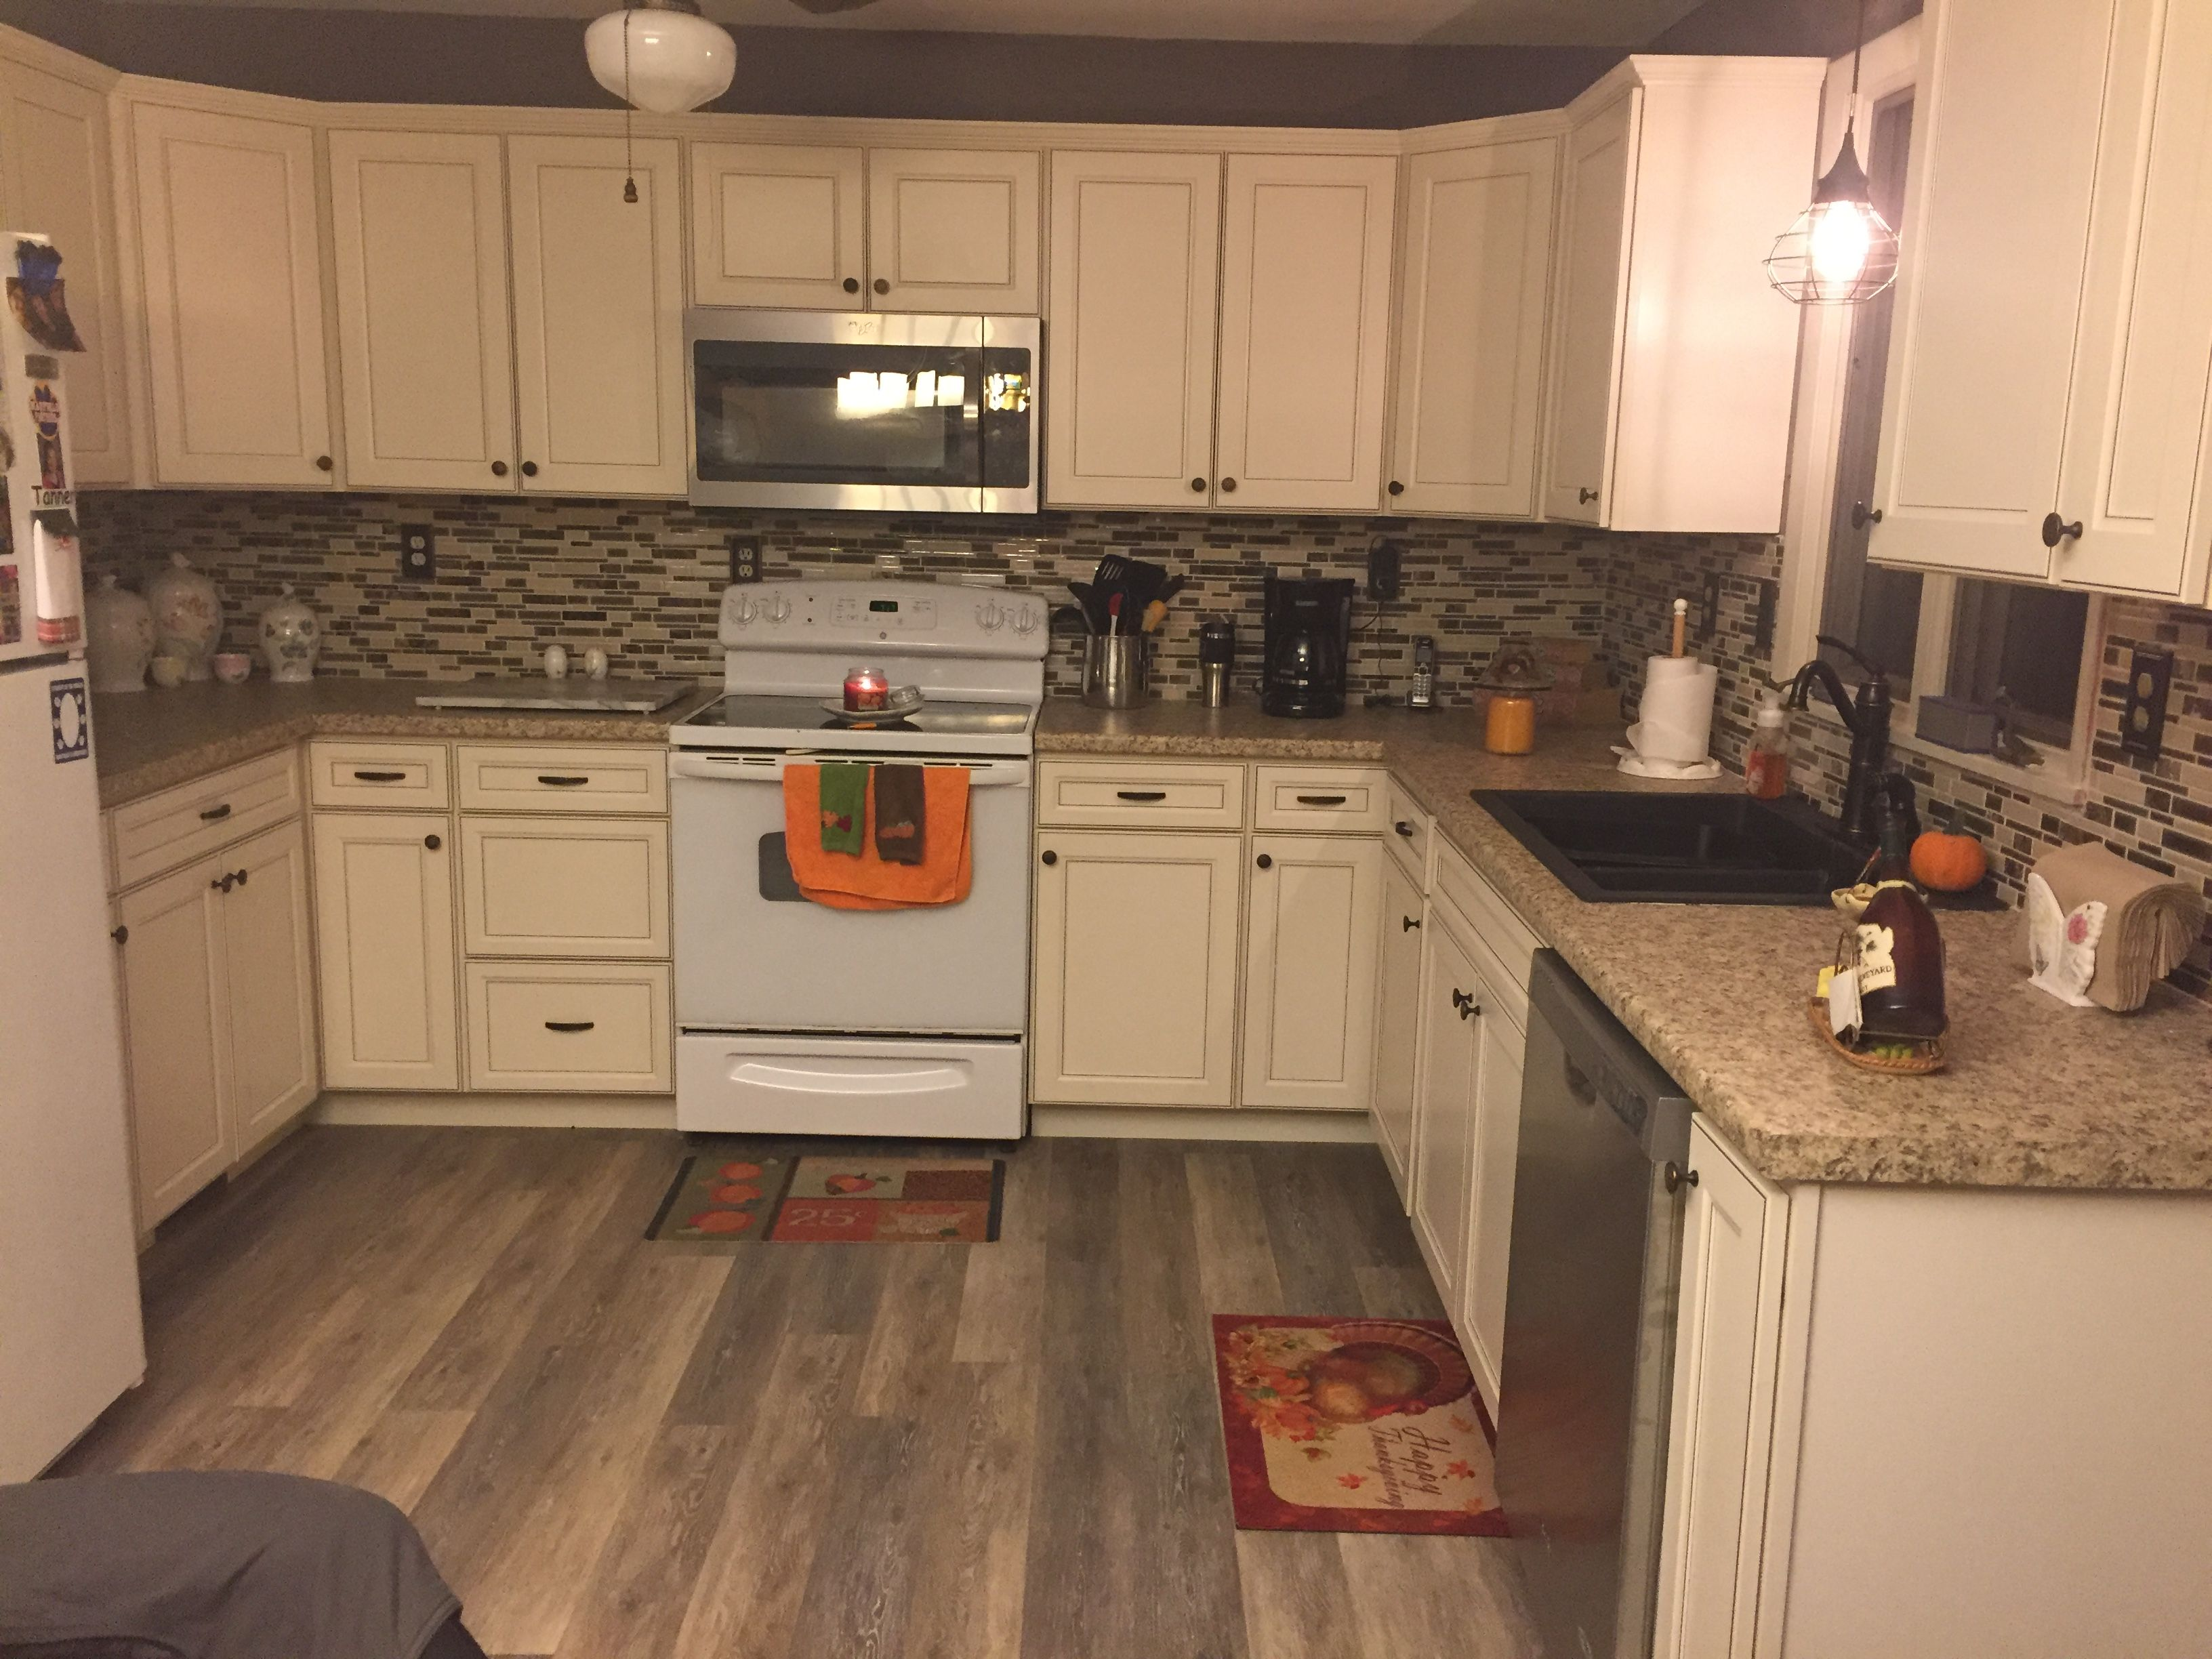 Lowes Caspian Off White Cabinets Off White Kitchen Cabinets White Kitchen Decor New Kitchen Cabinets